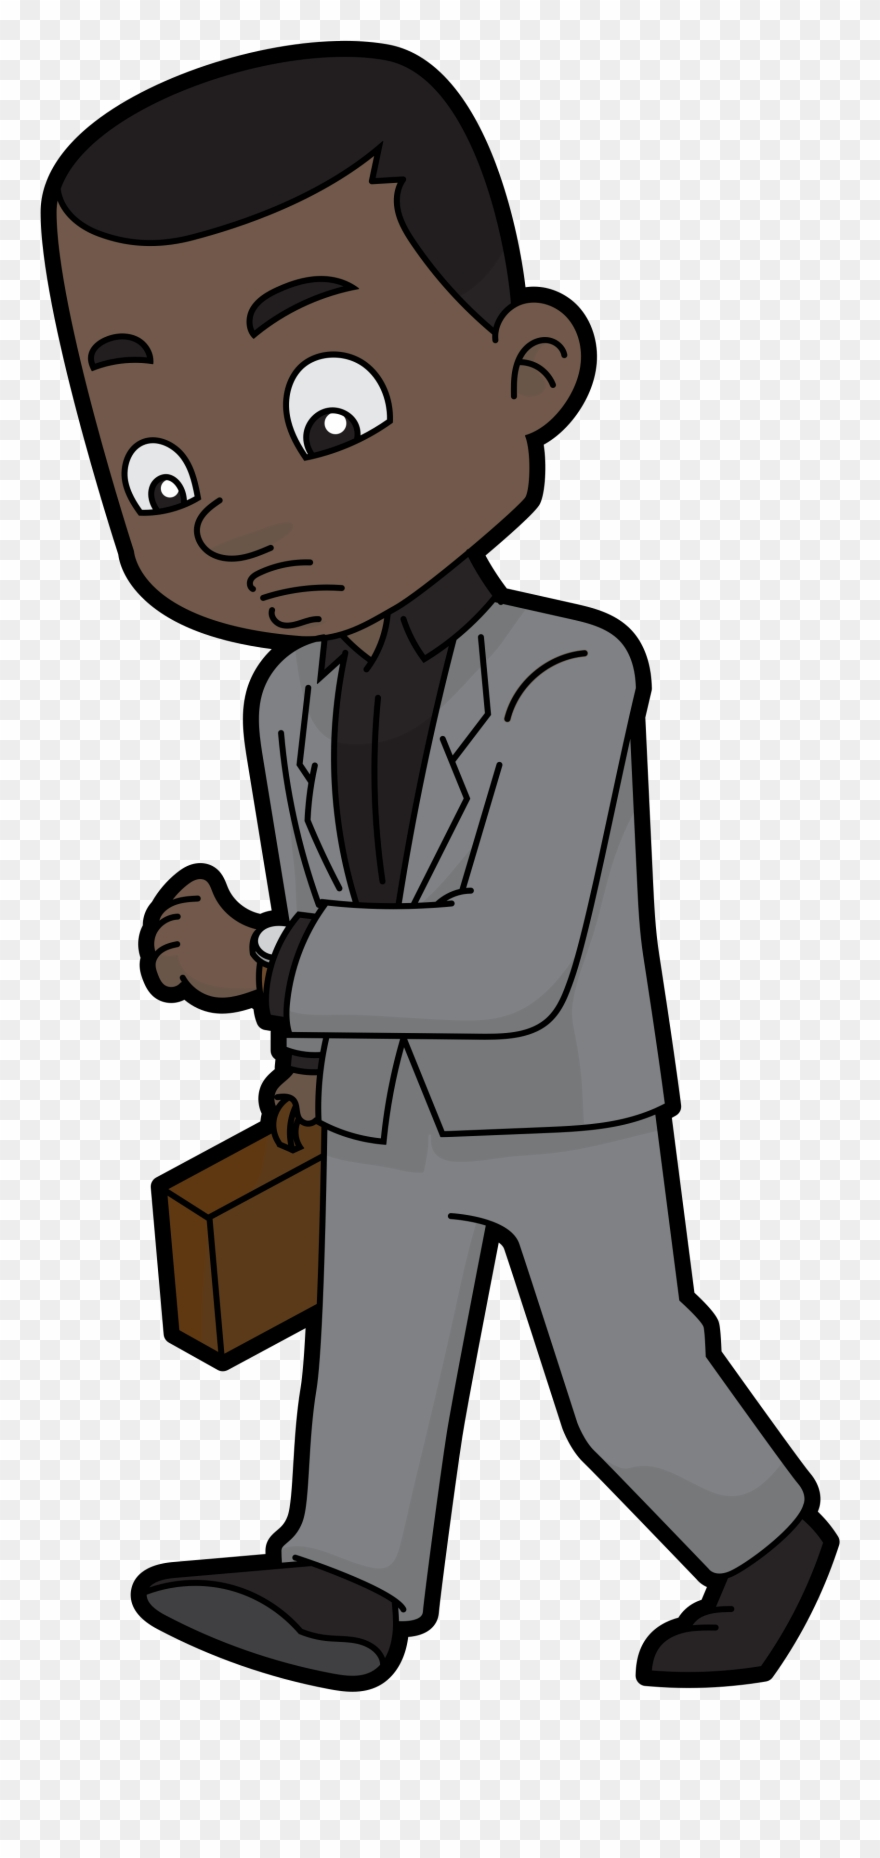 African american business man clipart png svg download Vector Transparent File Cartoon Black Checking - Black Businessman ... svg download